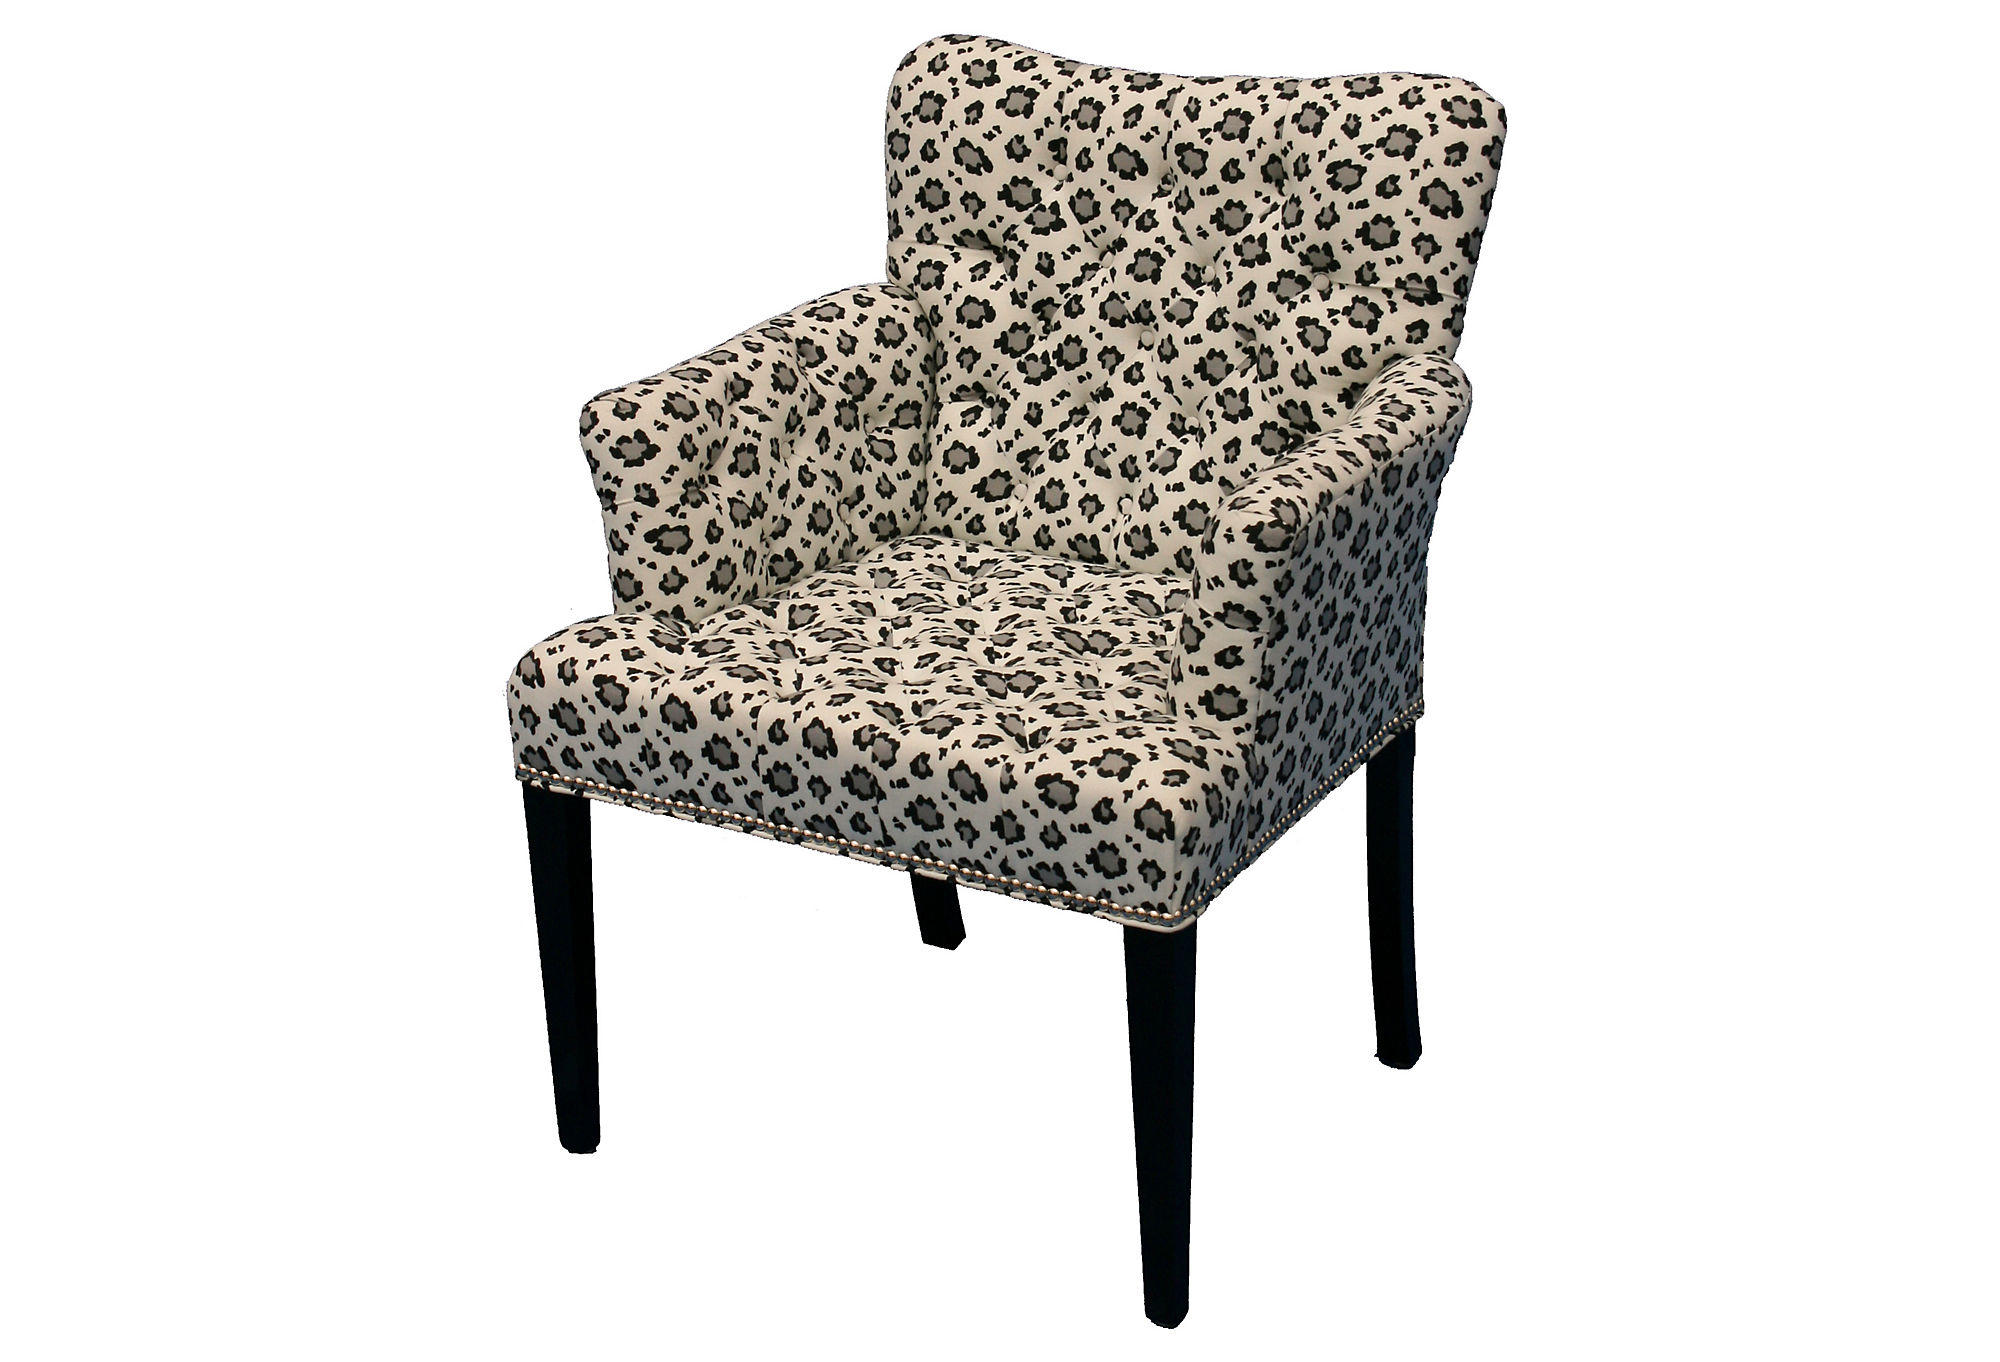 Cheetah Chair Barclay Butera Ridgecrest Cheetah Print From One Kings Lane